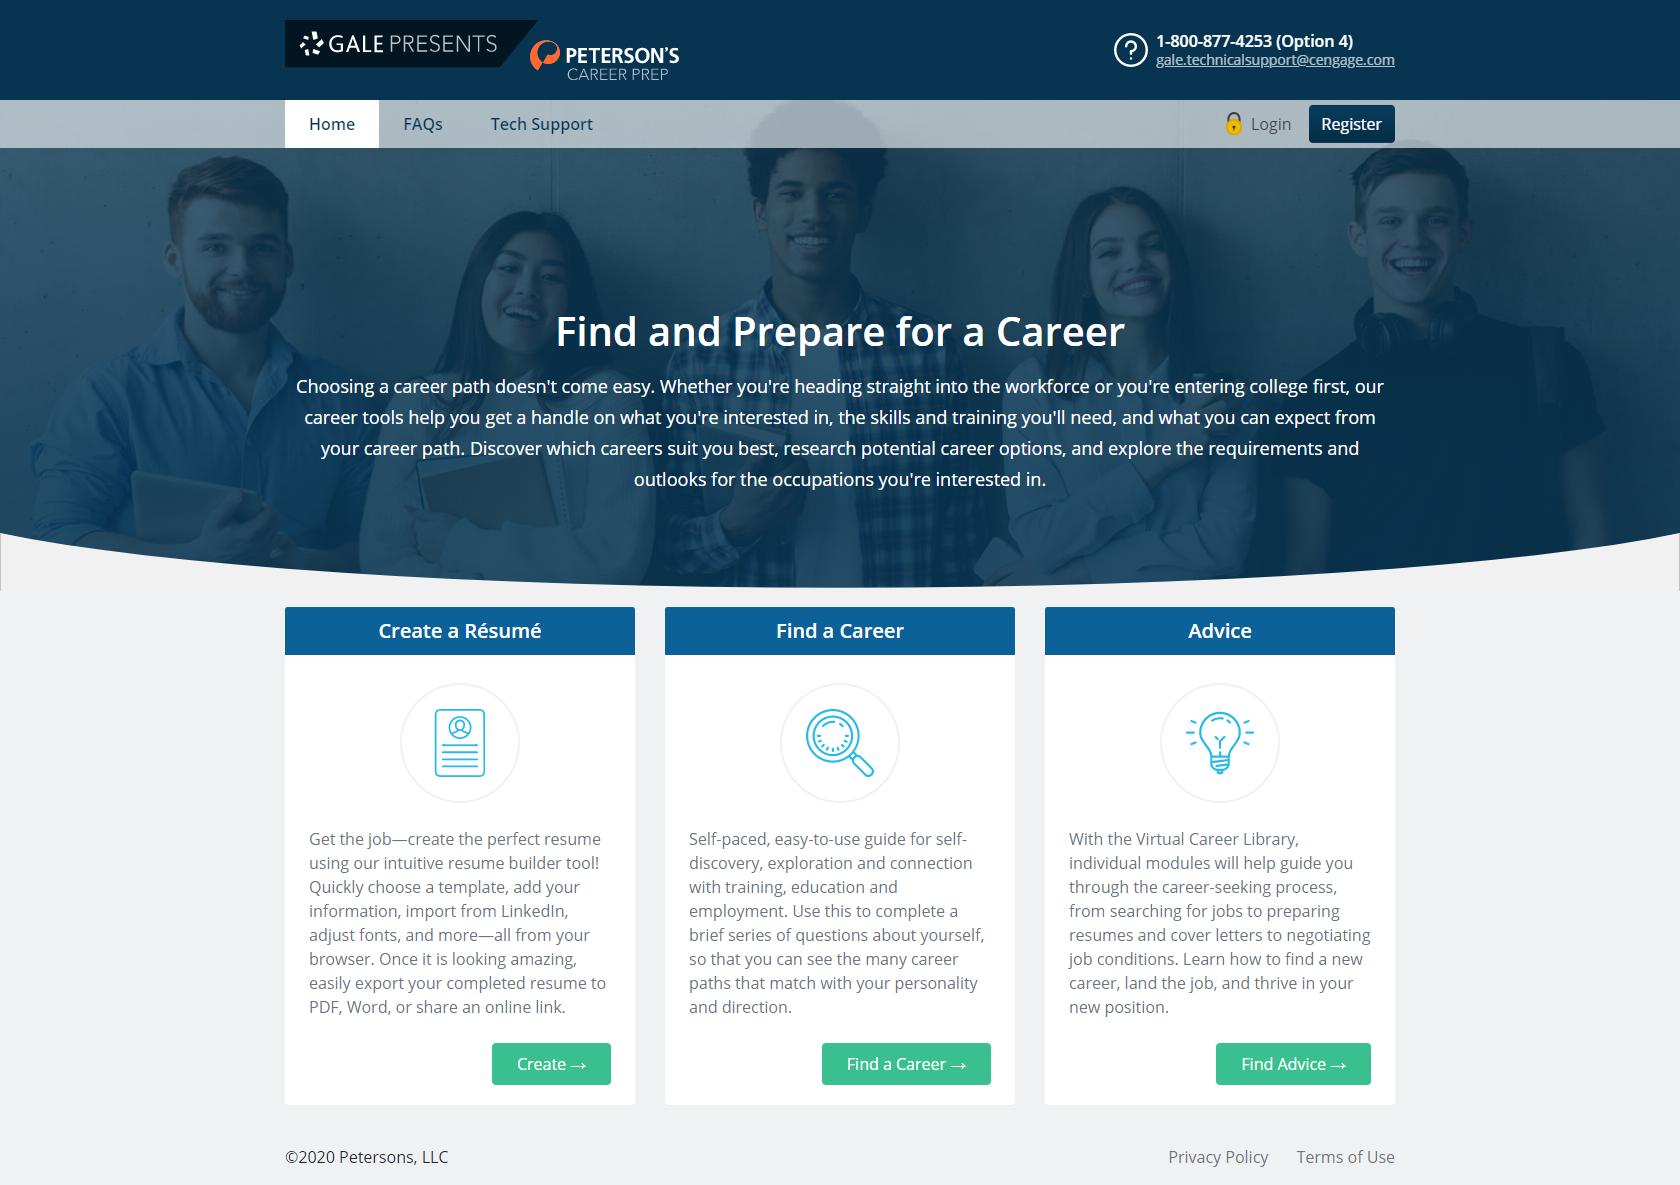 Gale Presents: Peterson's Career Prep is mobile accessible and features a simple homepage design.